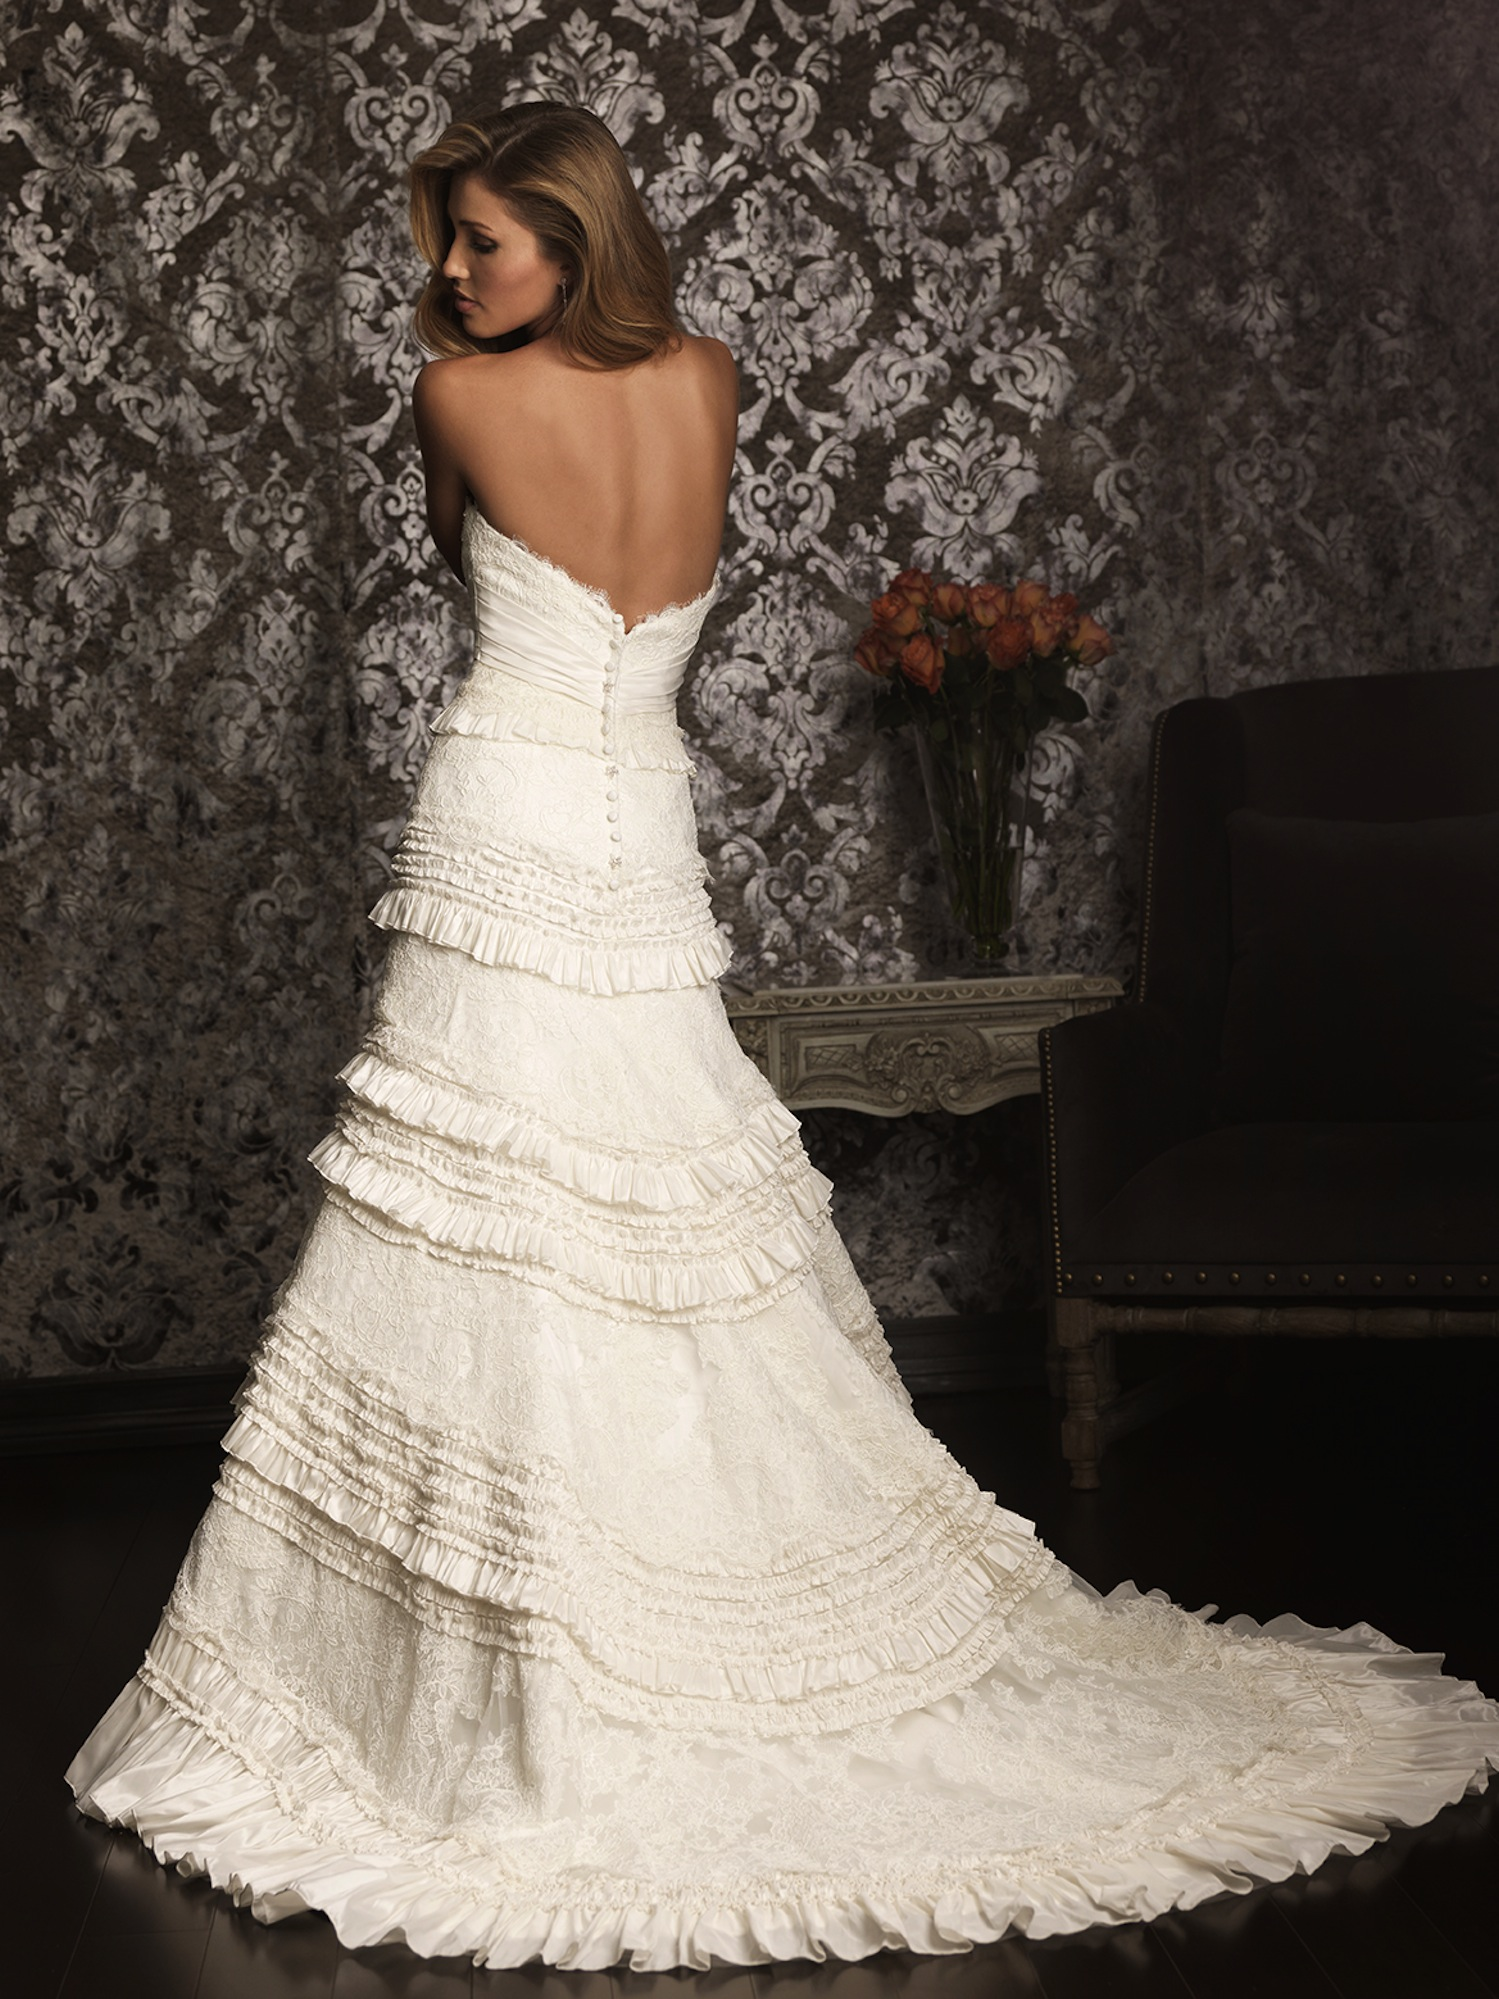 2013-allure-bridals-wedding-dress-bridal-gown-allure-collection-2013-9011b-2.original